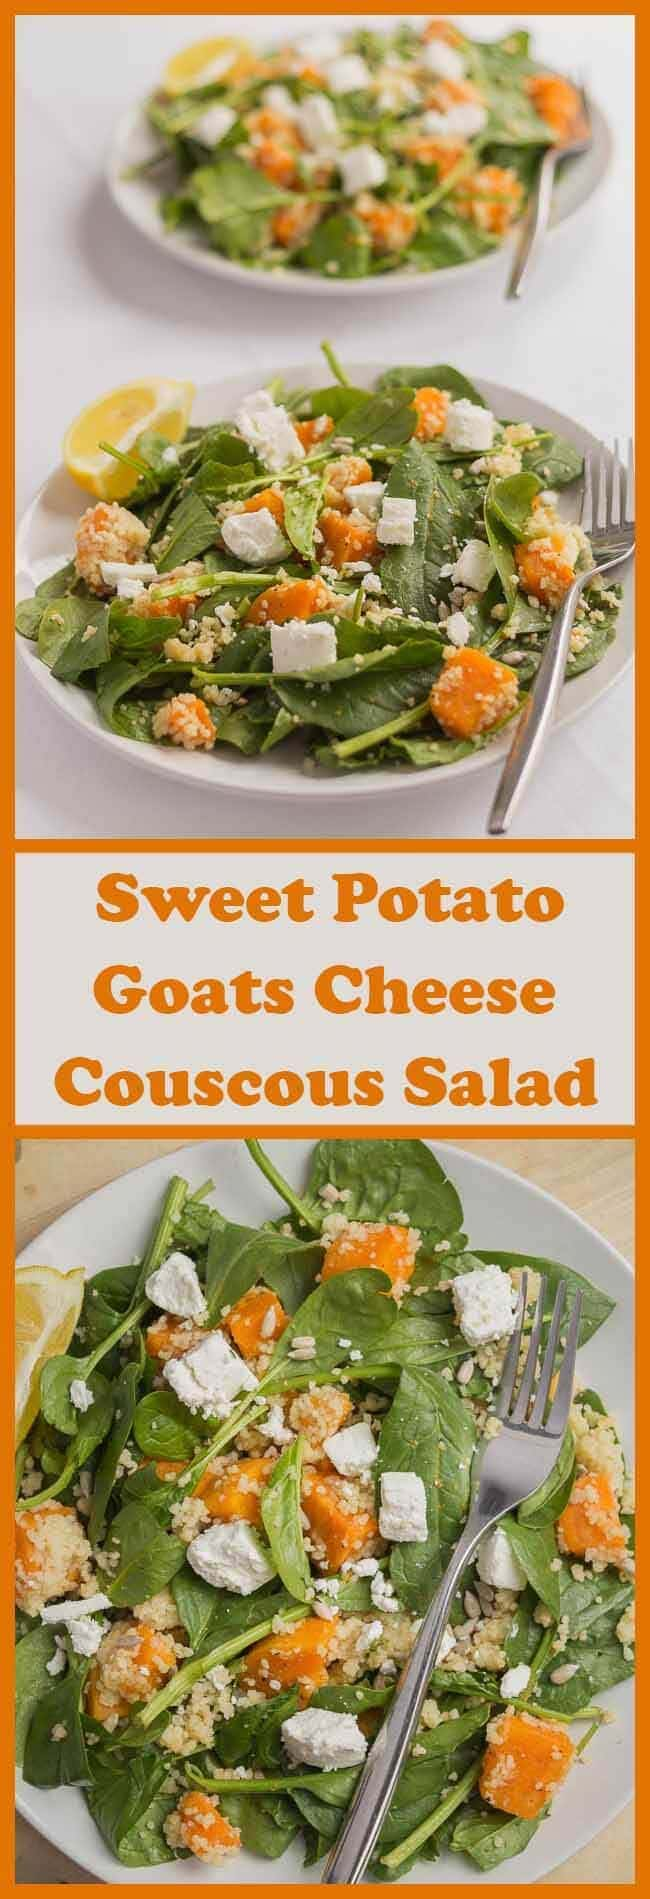 "This sweet potato goats cheese and couscous salad is delicious. It's packed with protein, dietary fibre and makes a great quick healthy lunch. The really light olive oil and lemon juice marinade gives it a perfectly balanced light and fresh ""zingy"" taste."